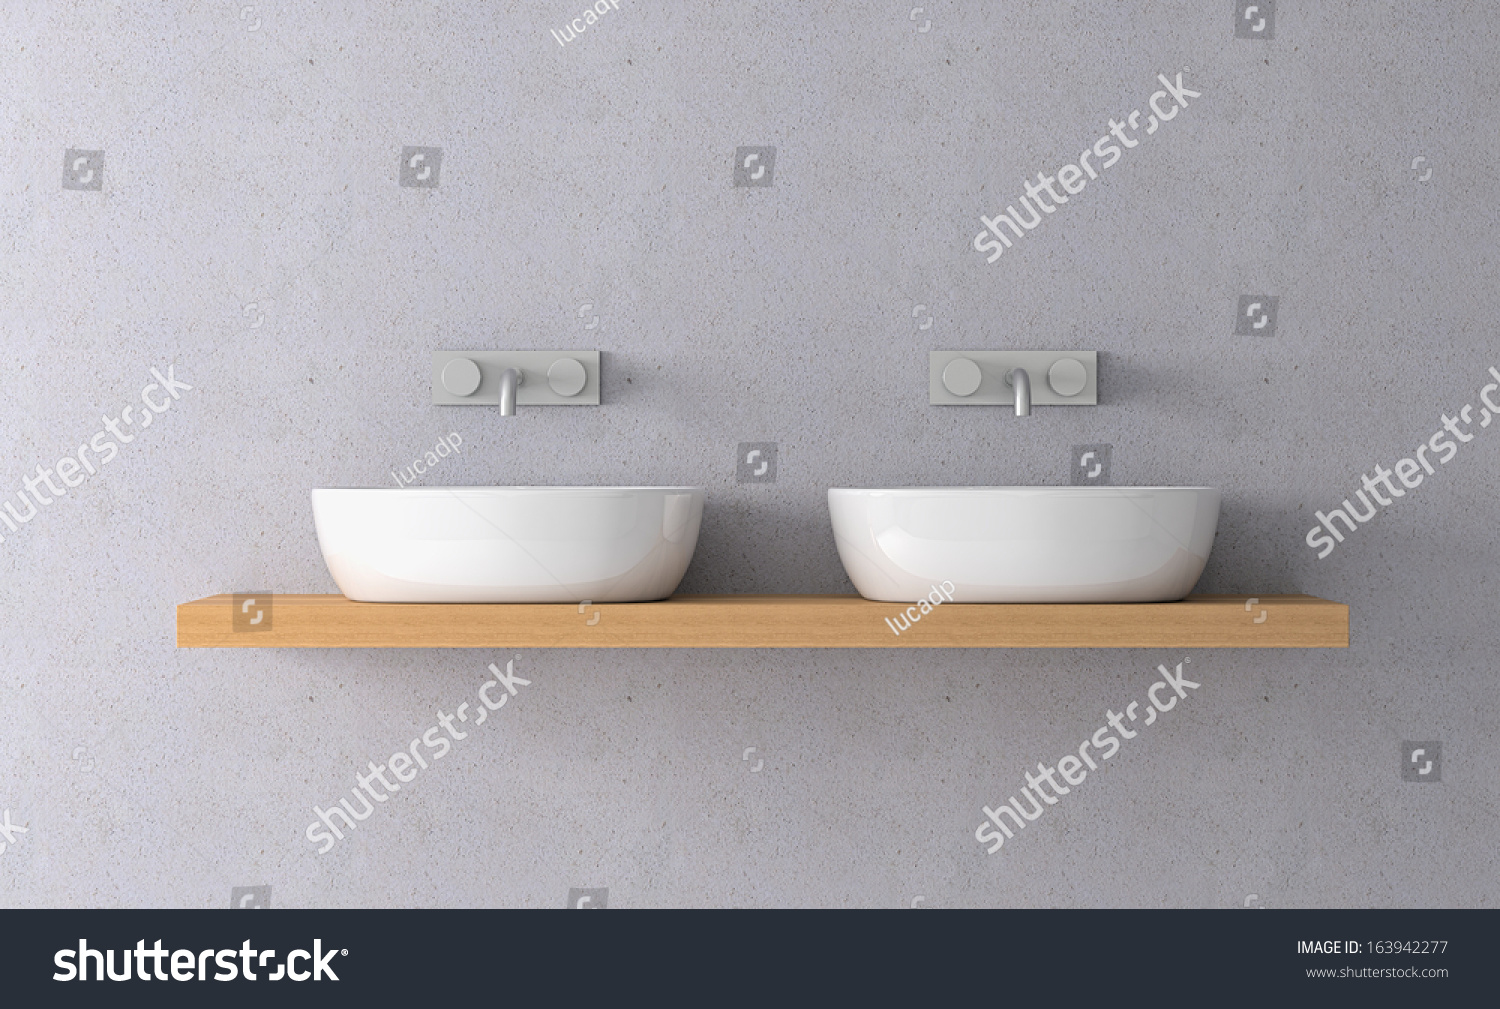 Front View Two Sinks On Shelf Stock Illustration 163942277 ...